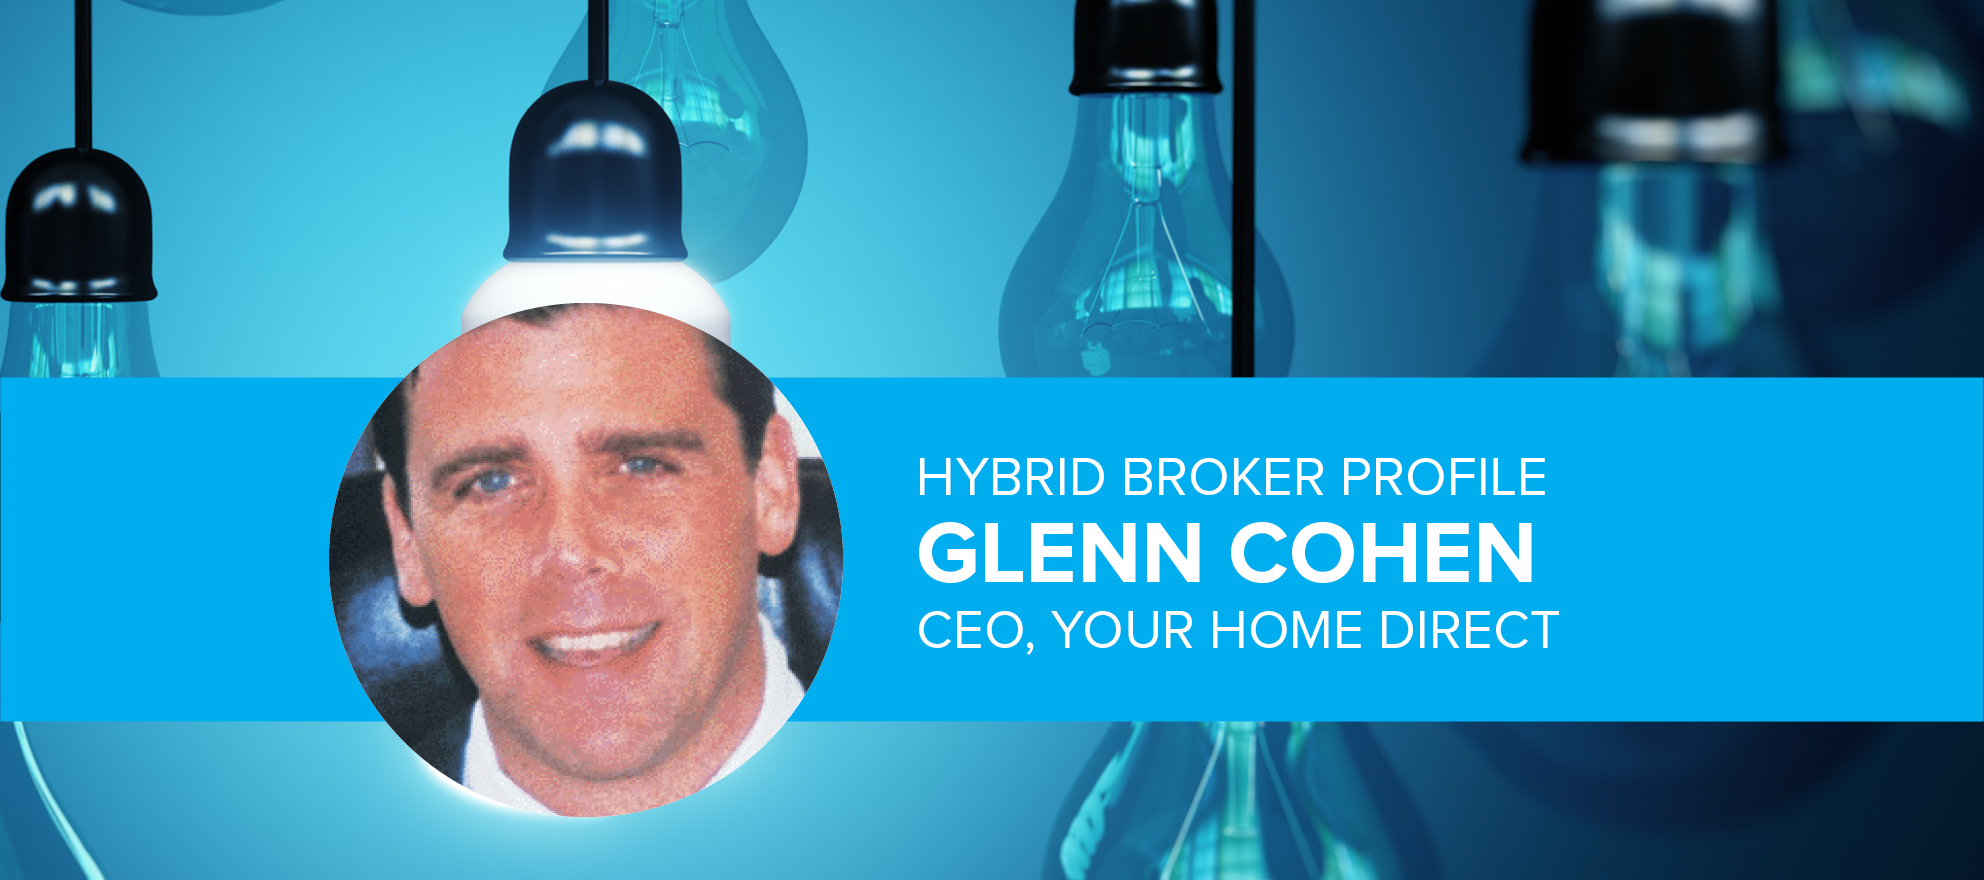 Remember Your Home Direct, the hybrid broker that crashed and burned?